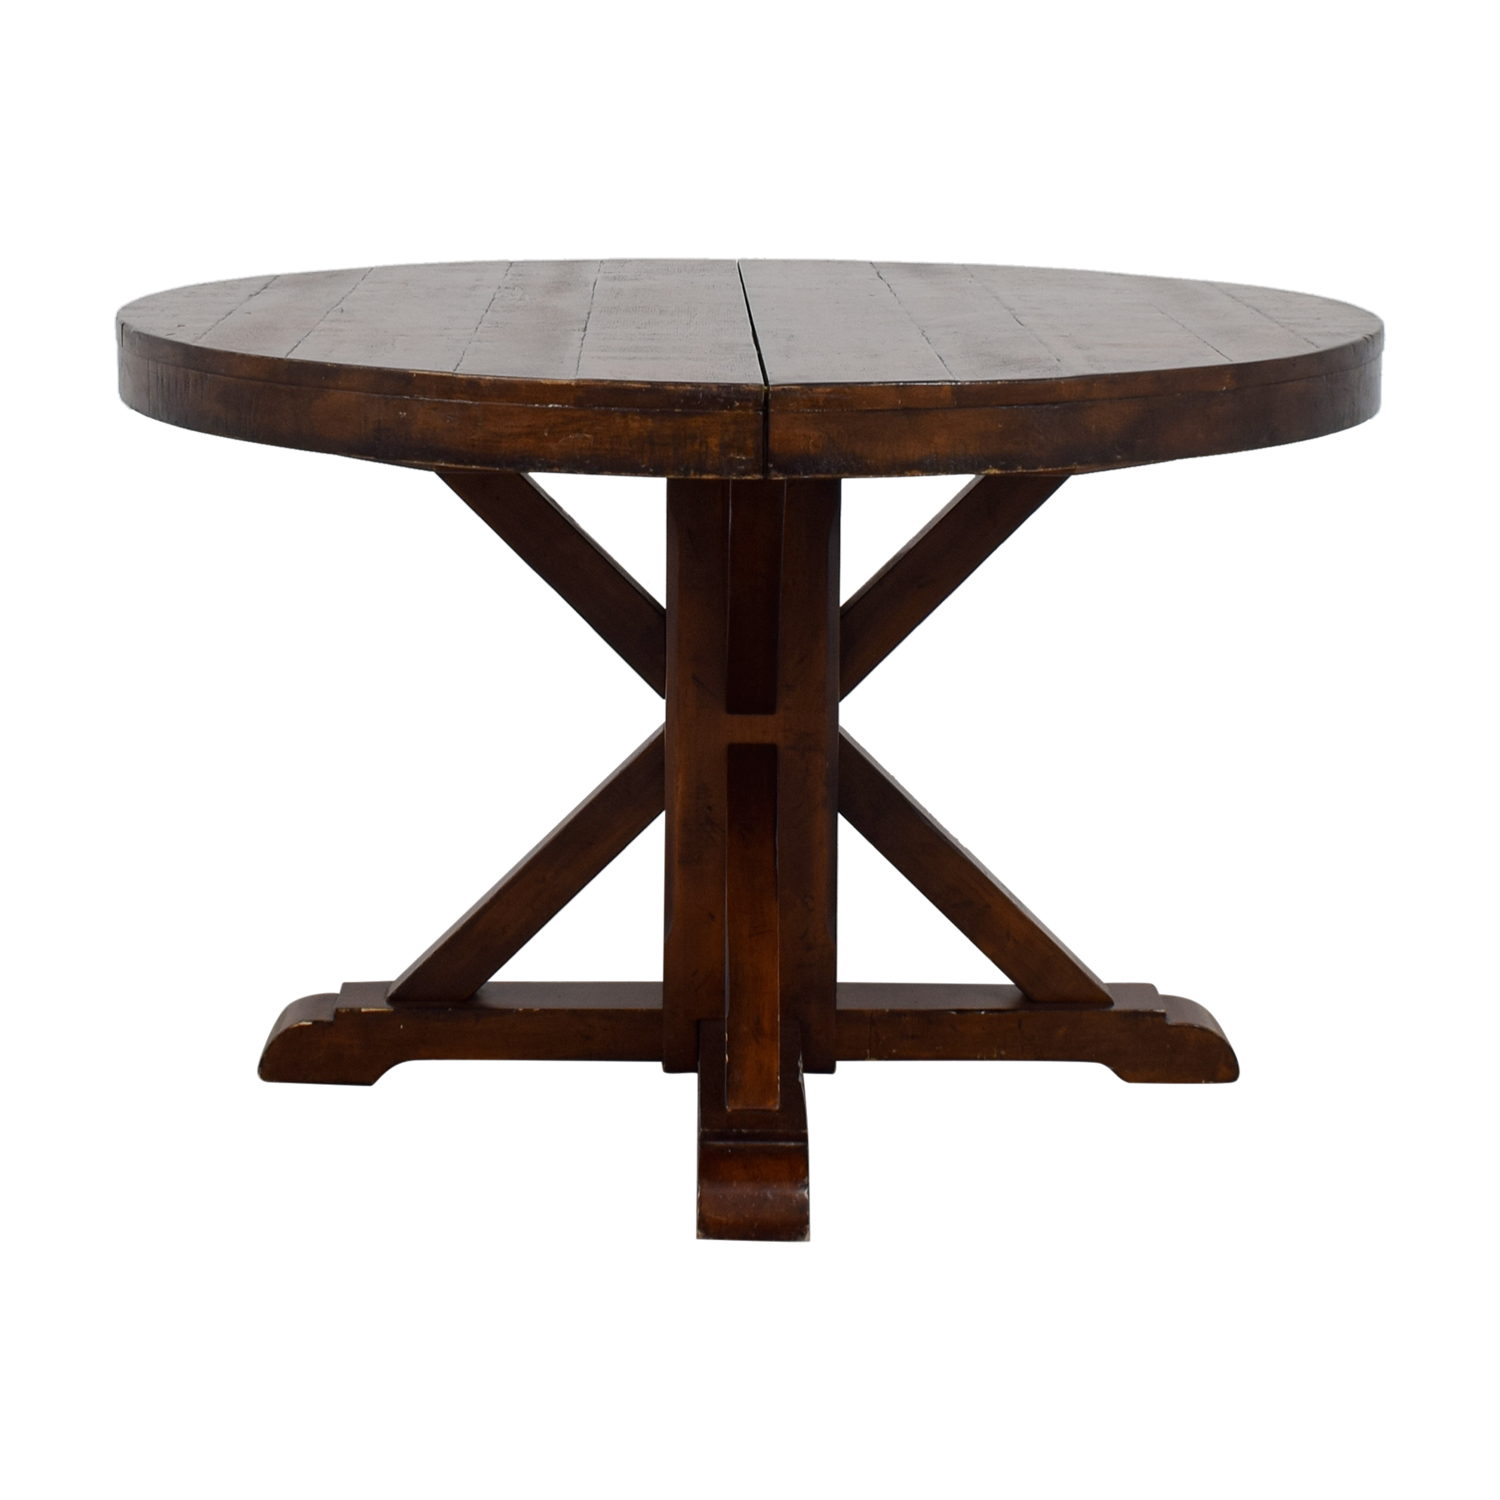 54% OFF   Pottery Barn Pottery Barn Benchwright Extending Round Pedestal  Dining Table / Tables